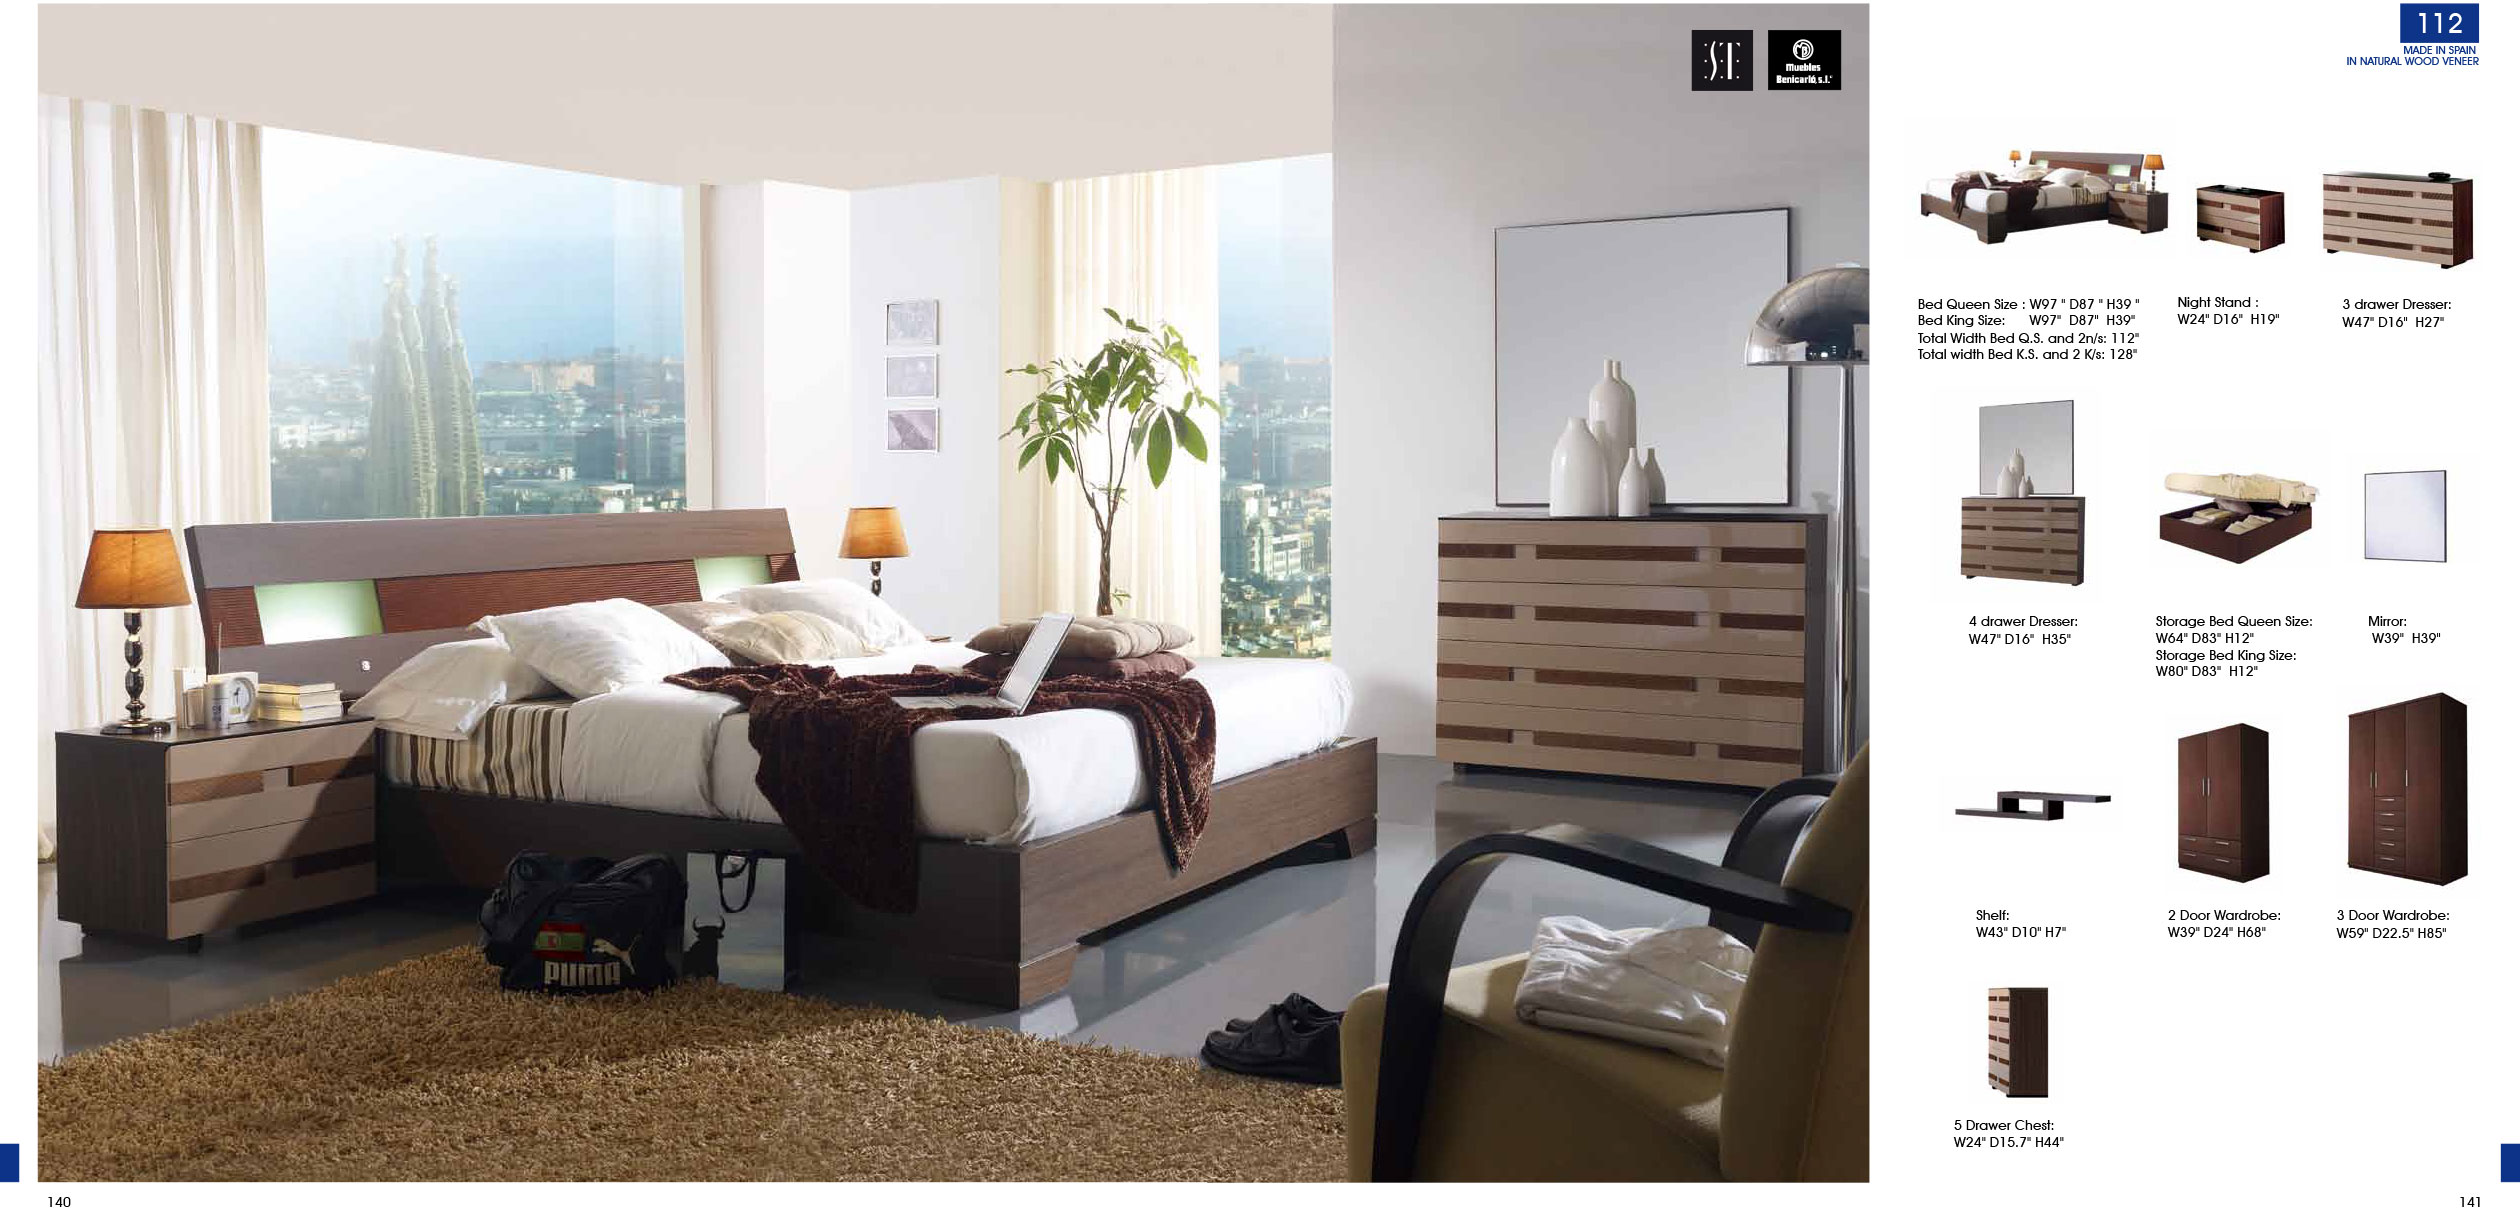 Superieur 112 Bedroom 5pc Set